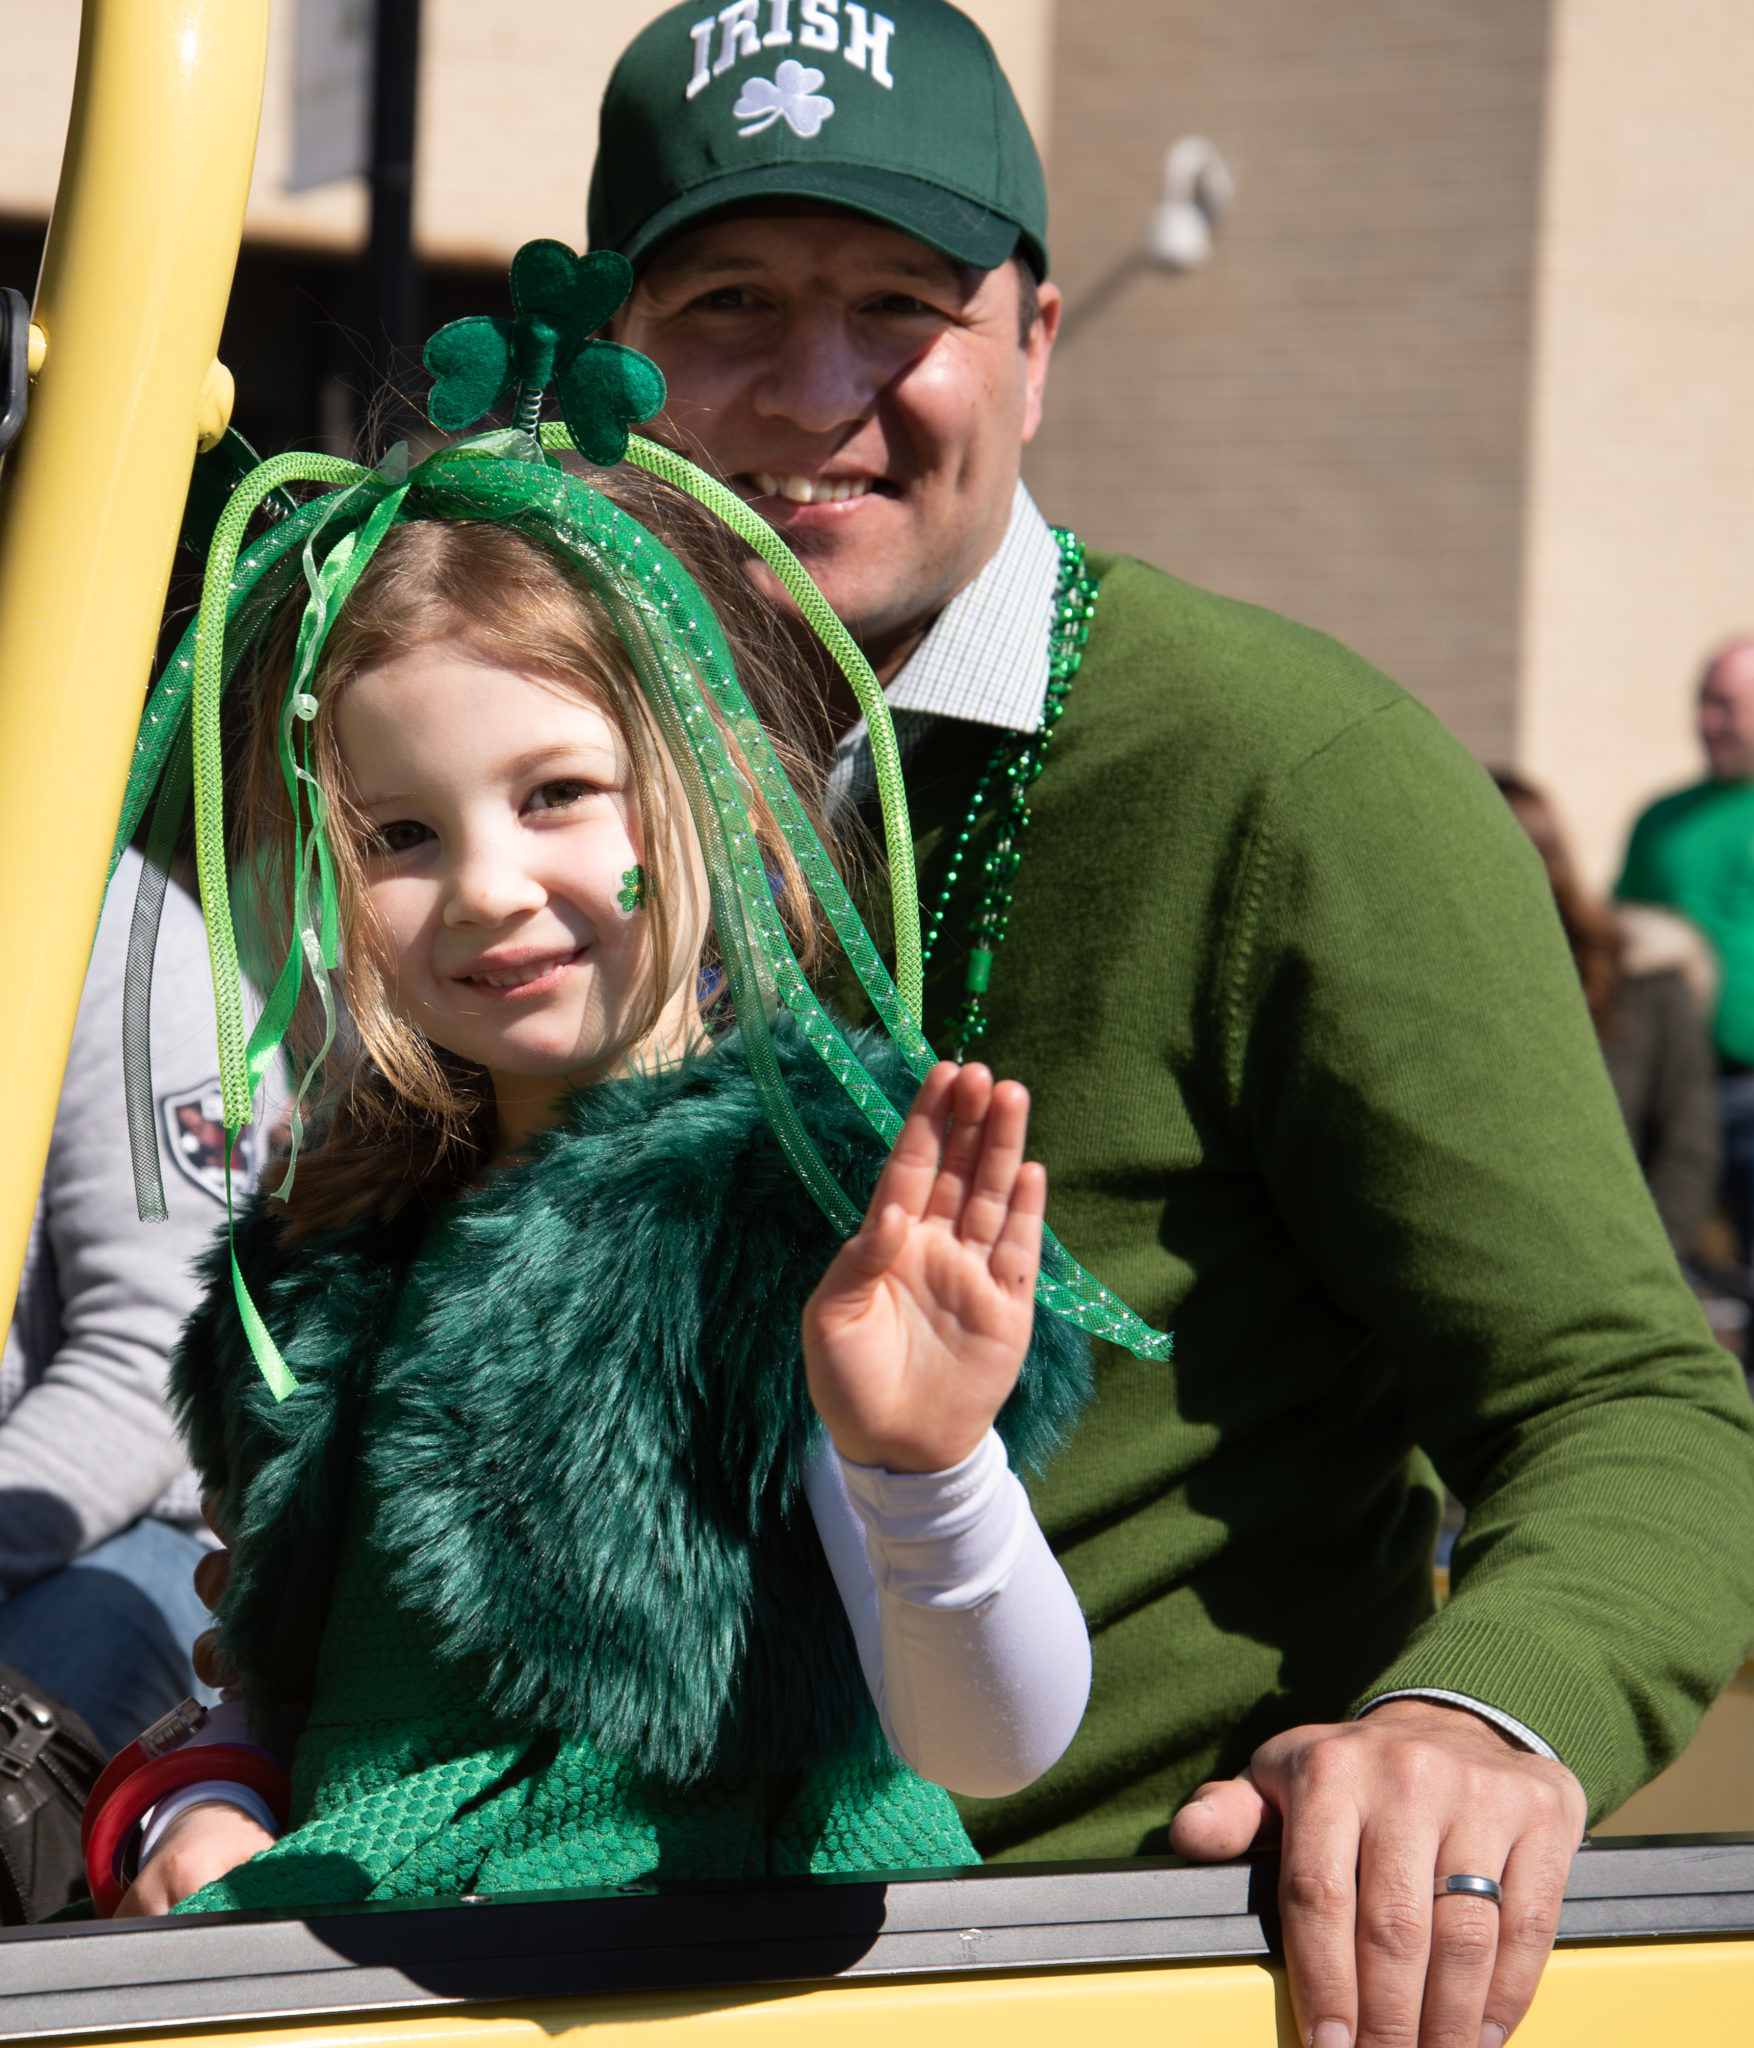 Girl and her father at the St. Patricks Day parade waving